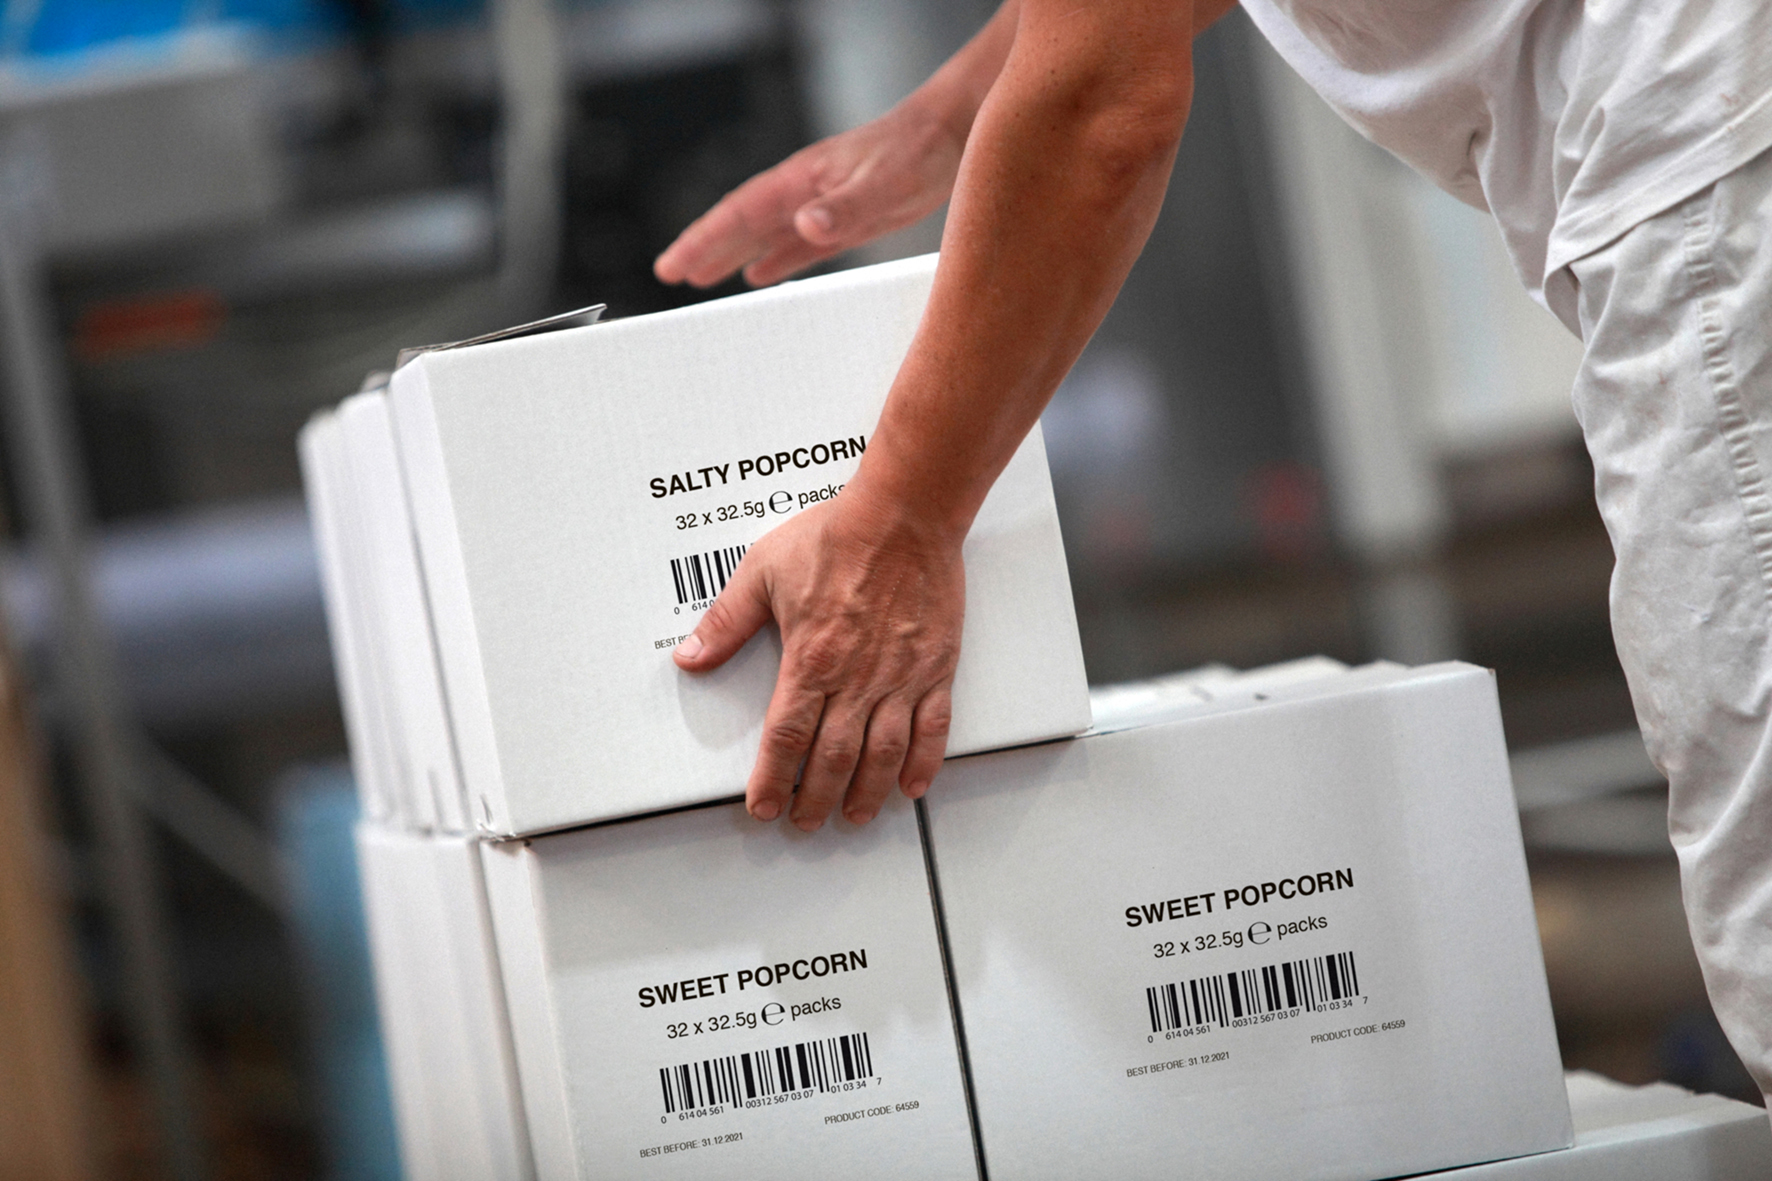 DataLase coding & marking technology helps increase supply chain efficiencies